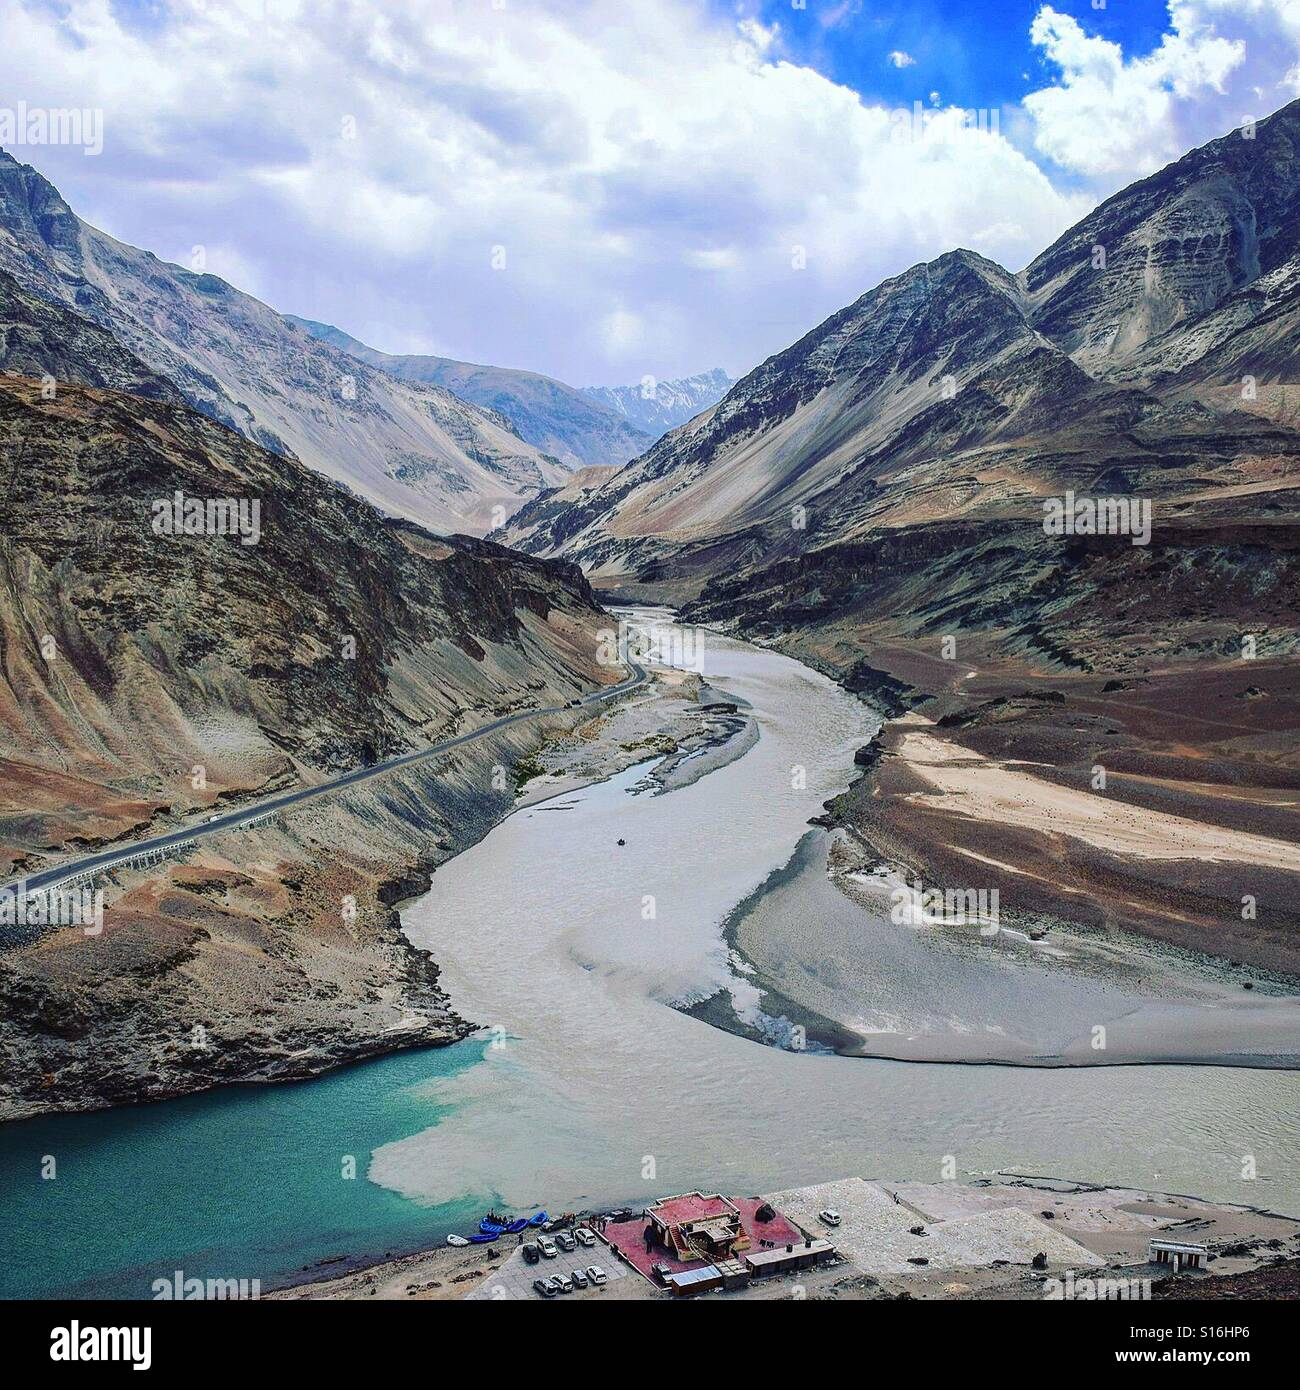 River meandering through the mighty Himalayas - Stock Image